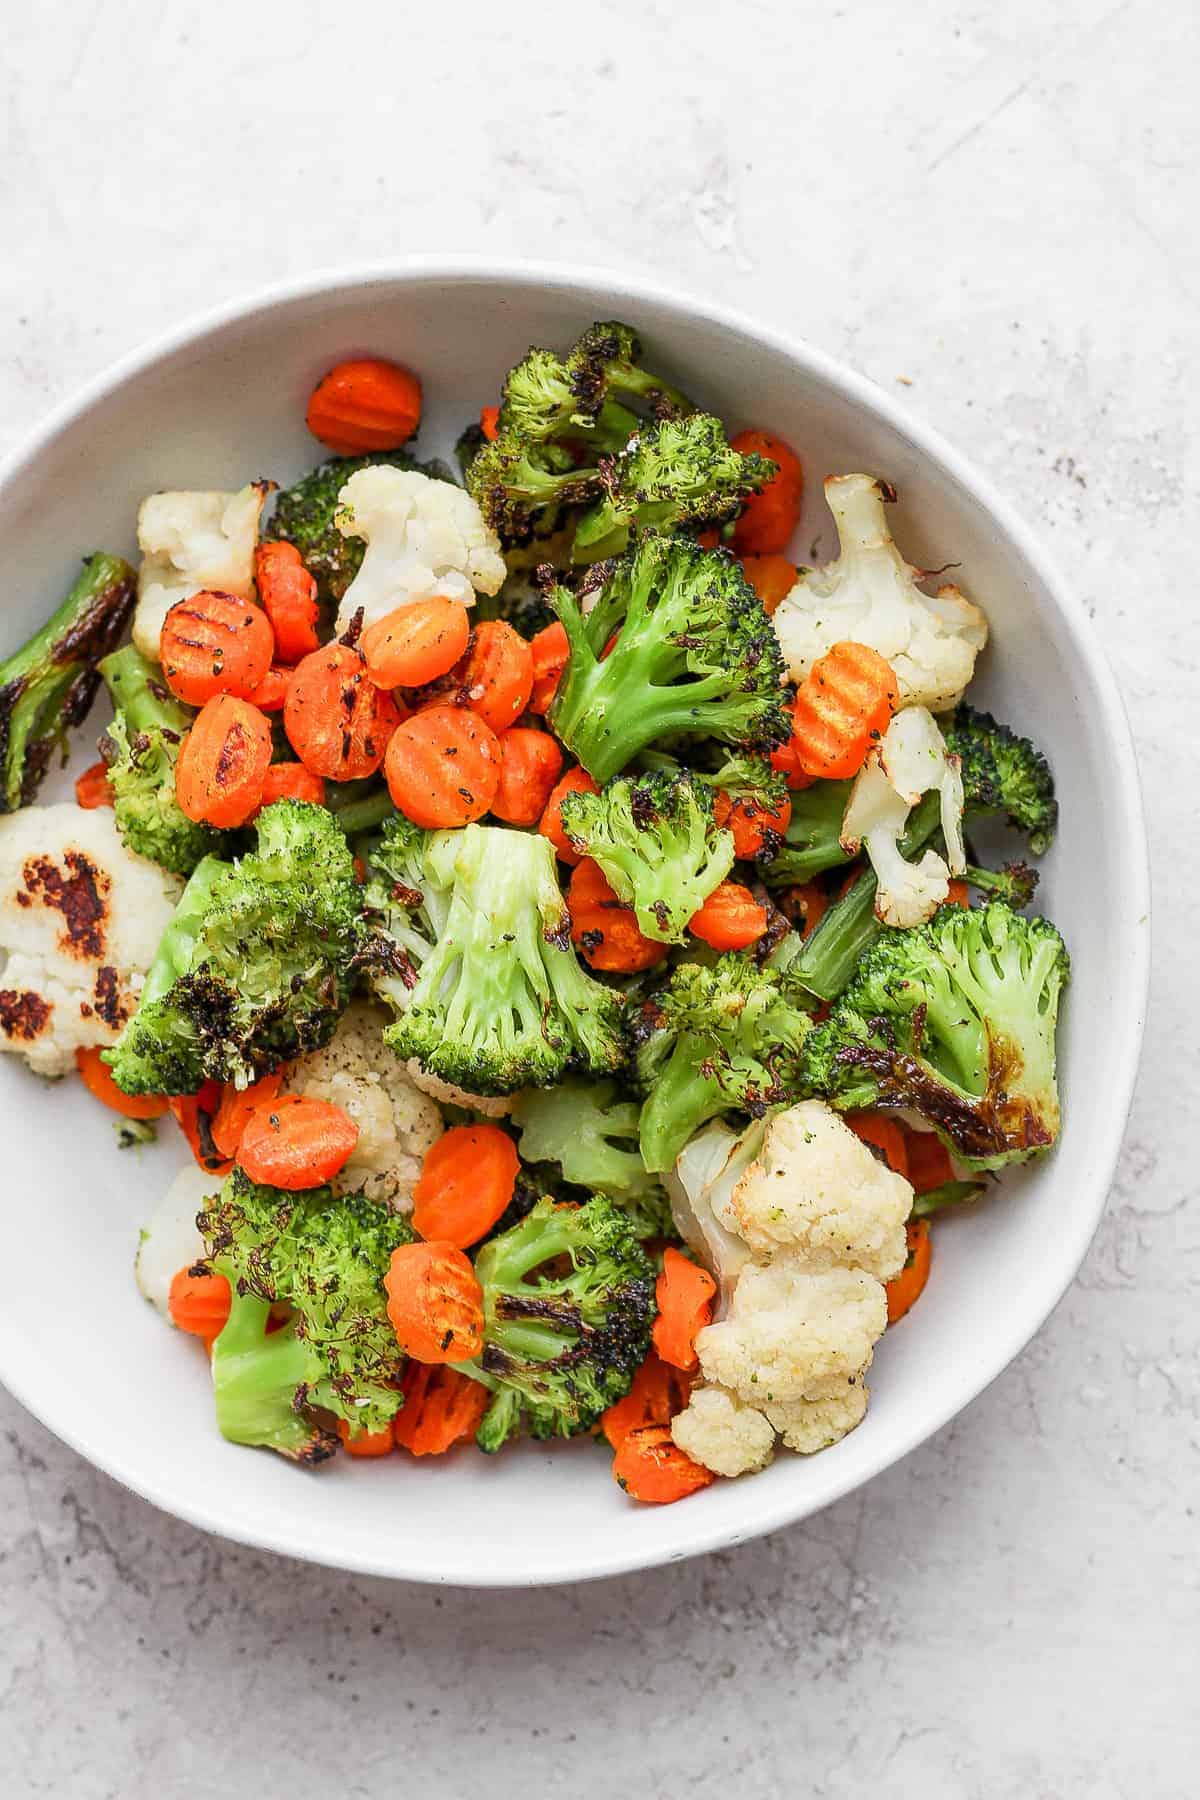 Roasted vegetables in a large bowl